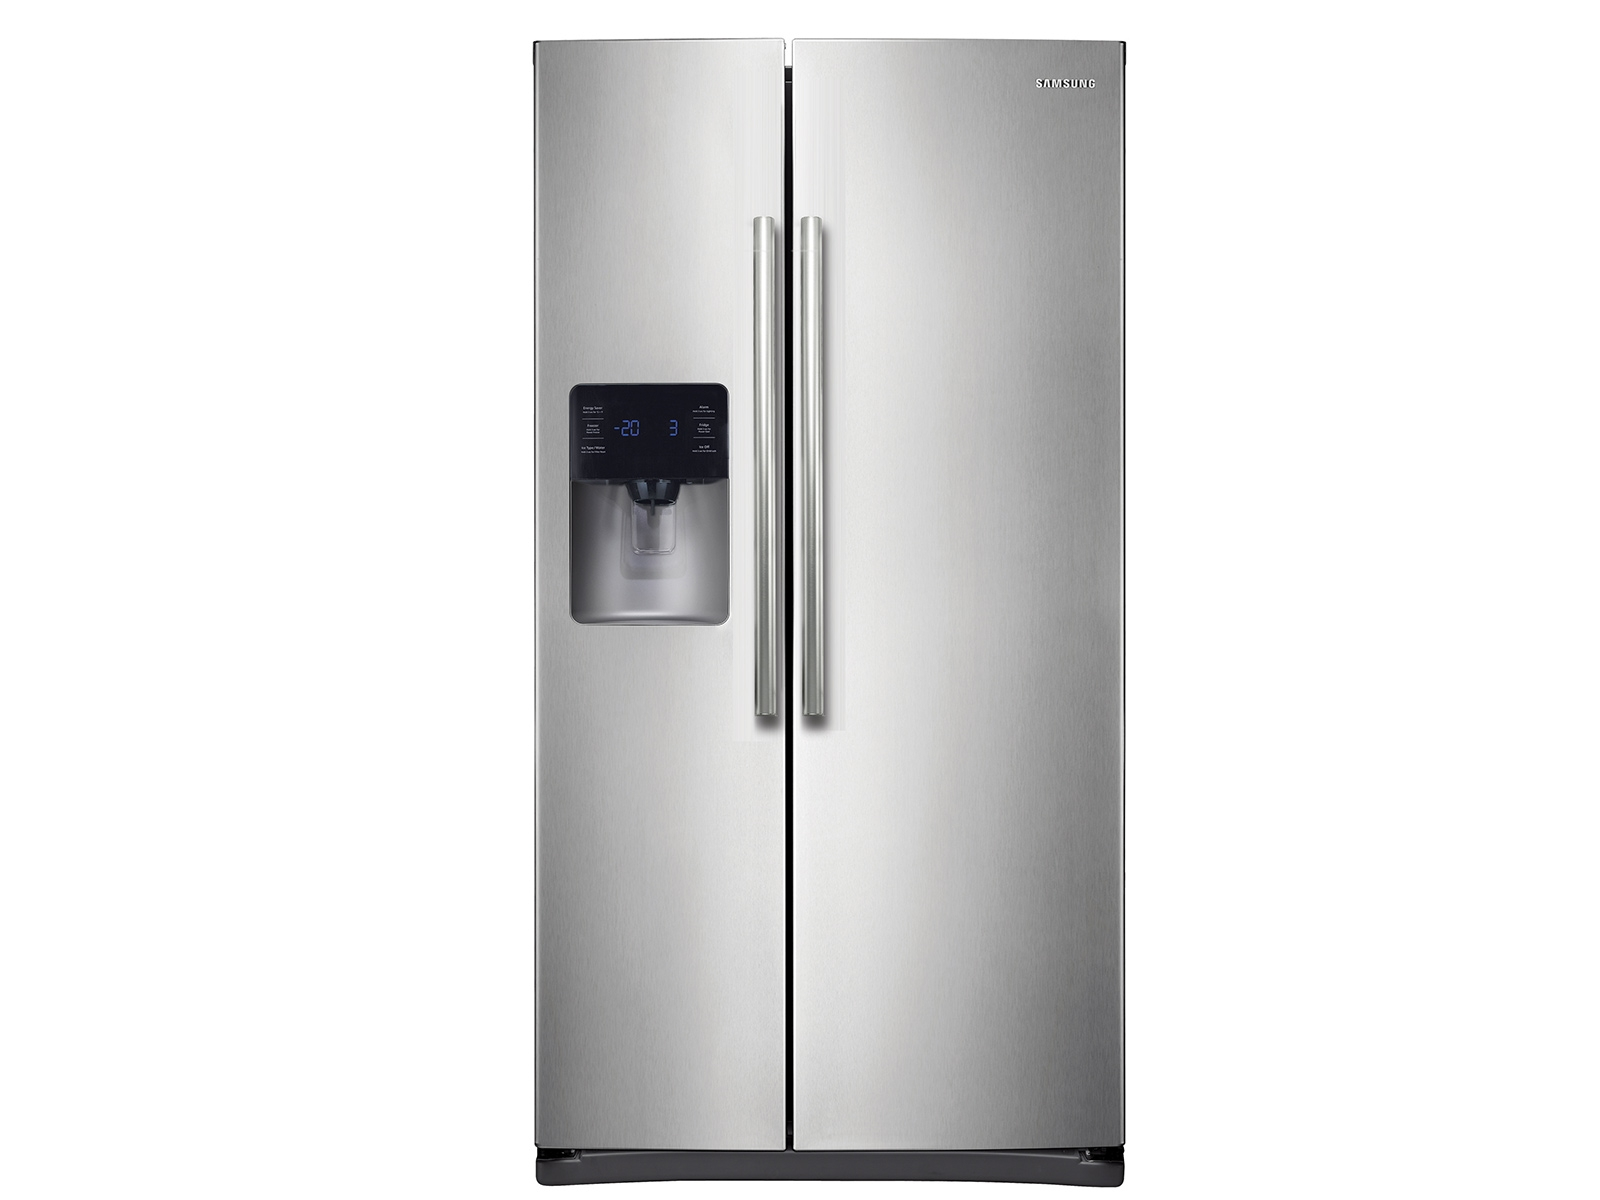 medium resolution of side by side refrigerator with in door ice maker refrigerators rs25h5111sr aa samsung us